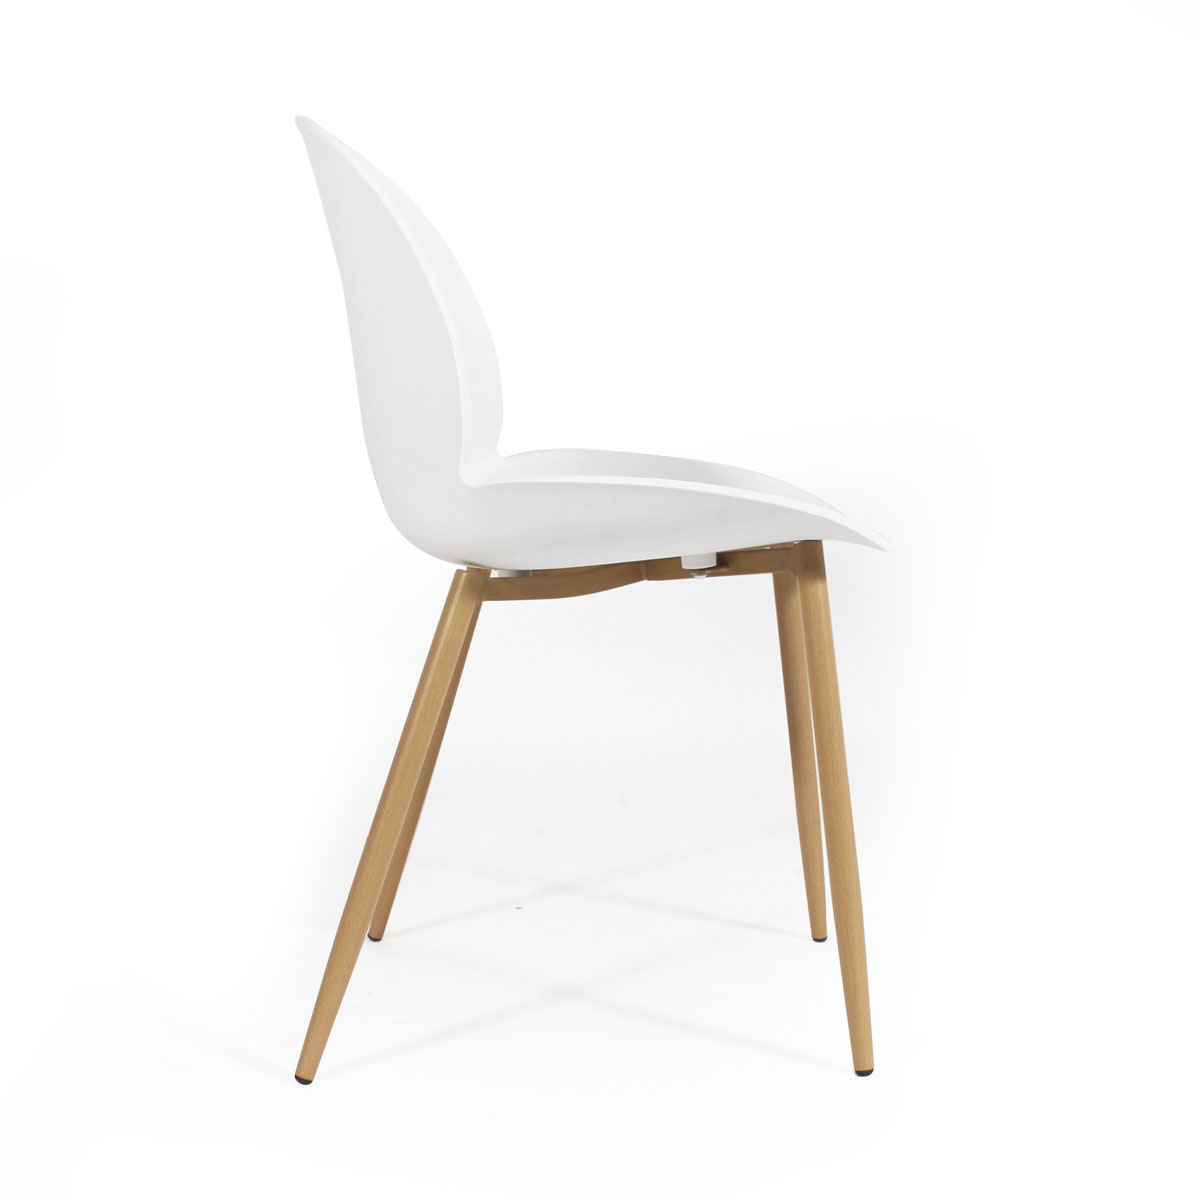 Chaise scandinave blanche salle a manger